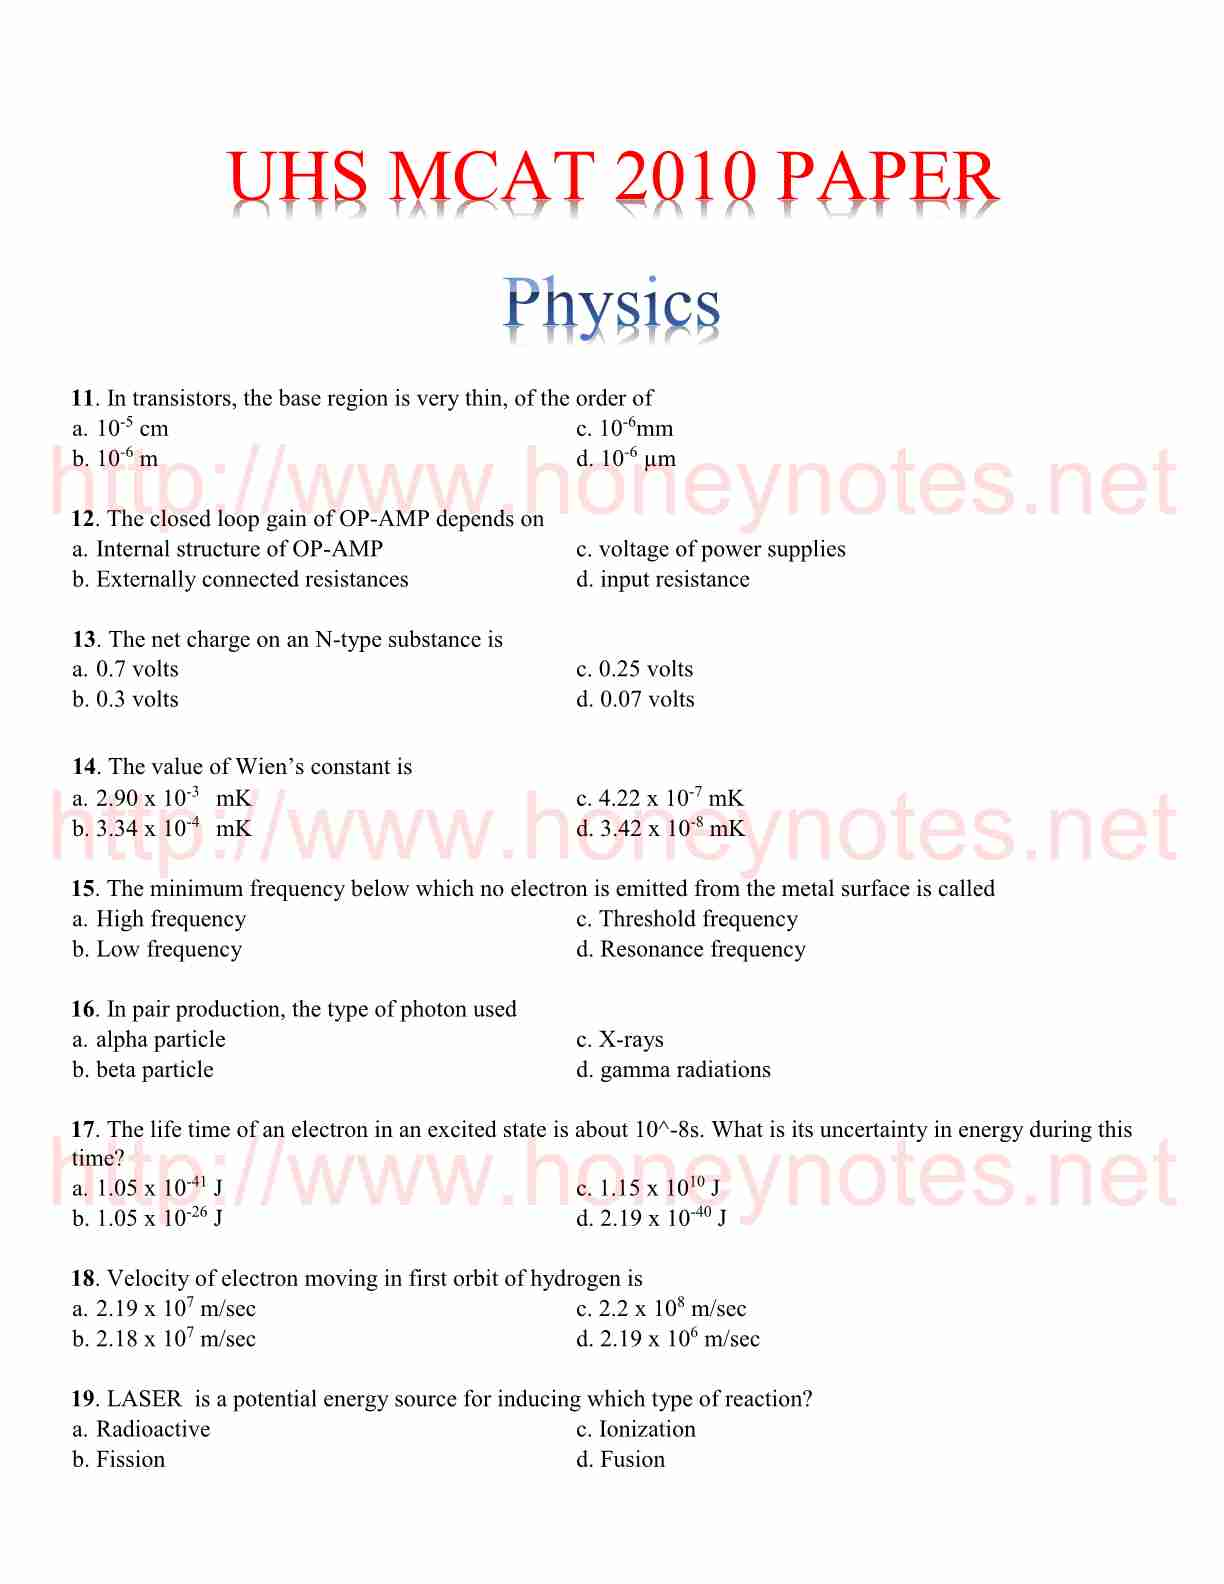 uhs mcat physics papers 2010 uhs mcat physics papers 2011 uhs mcat physics papers with answers uhs mcat physics papers 2012 uhs mcat physics papers 2013 with answers uhs mcat physics papers pdf uhs mcat physics papers download uhs mcat physics papers 2009 MCAT Past Paper 2010 - Etest And Admission GuideLine Sample Paper Model Test Paper Entry Test 2010 Key / Correct Answers to Questions (Entrance Test; MCAT) 2010 MCAT Past Papers Original Download 2012 2013 2014 Download MCAT Past Papers in PDF Archives UHS MCAT Past Papers 2015, 2014 With Answers Download mcat physics papers 2014 uhs mcat physics papers with answers mcat physics papers with answers 2014 mcat physics papers 2010 mcat physics papers download mcat english physics papers mcat paper 2013 by uhs mcat 2012 paper with answers uhs mcat physics papers 2009 mcat test papers free download mcat physics papers 2014 uhs mcat physics papers 2013 with answers mcat physics papers 2012 with answers mcat physics papers 2010 mcat english physics papers m.cat physics papers University of health physics Science MCAT Past papers with answer key free UHS MCAT Entry Test Answer physics Key 2016 Check Online Free Download UHS MCAT Medical Admission physics Entry Test 2015 Model Paper Uhs Answer physics Keys Azad Kashmir 4 Oct 2015 Online